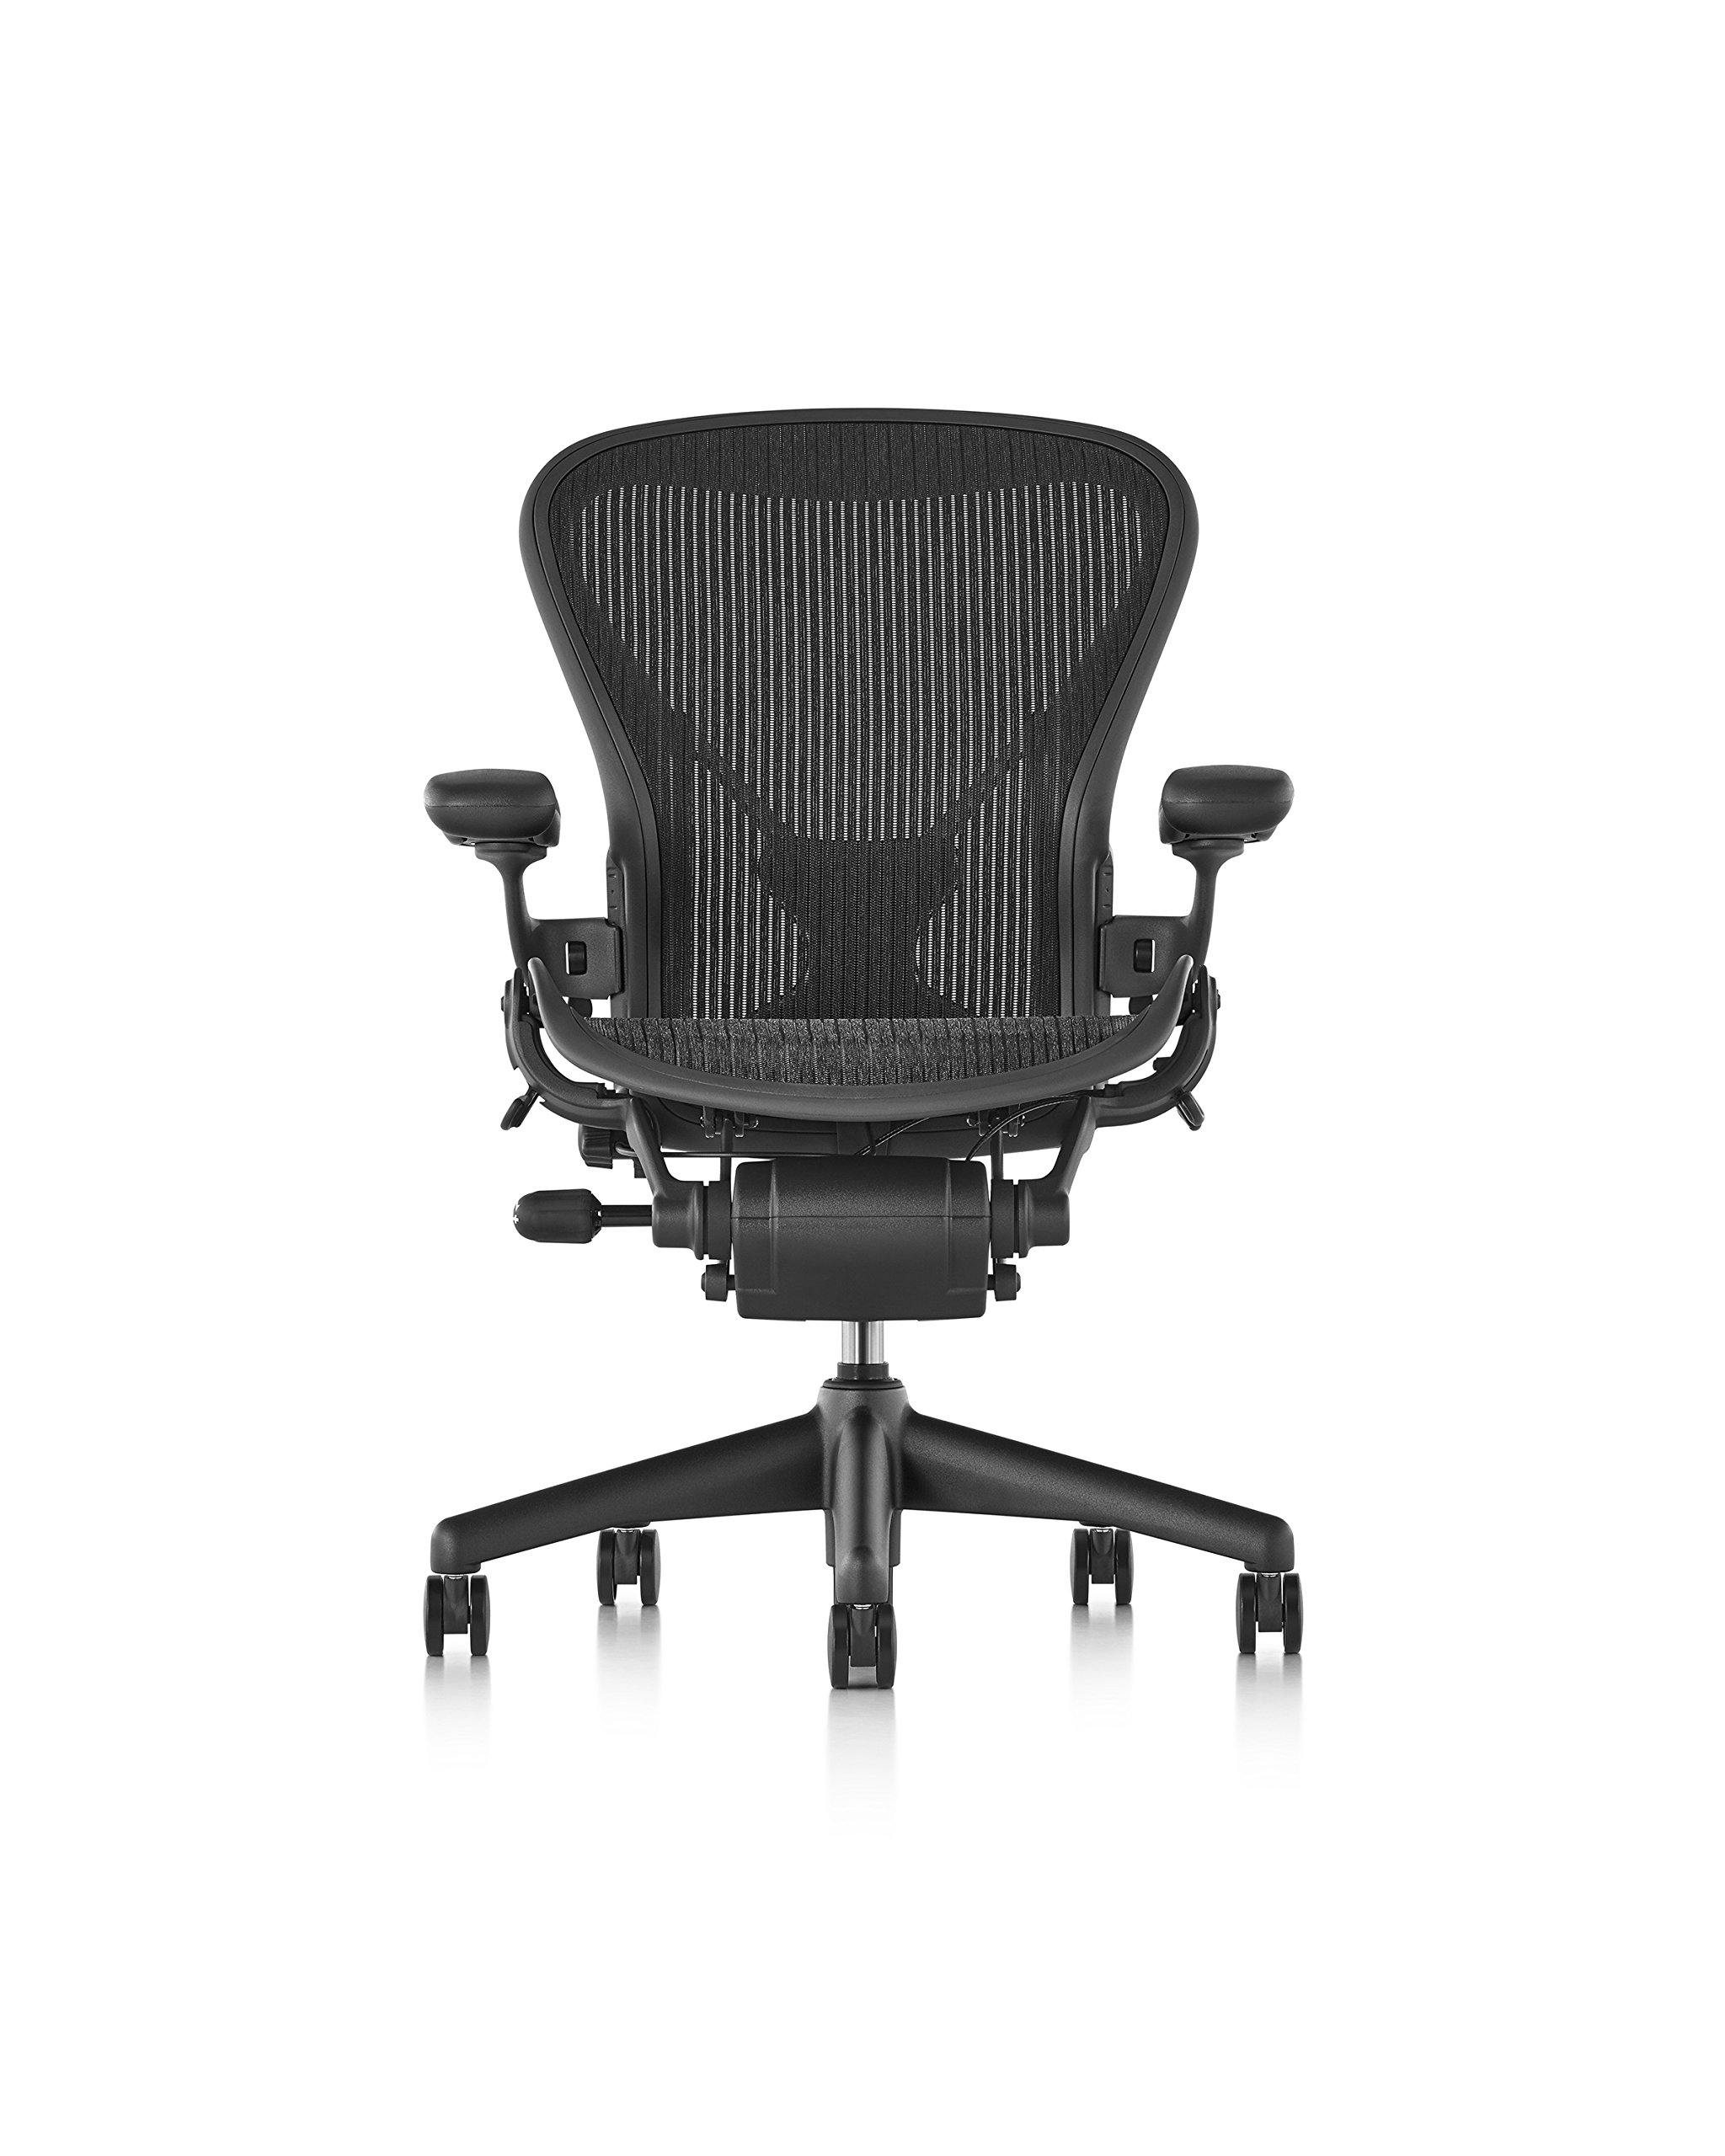 Herman Miller Classic Aeron Chair - Size B, Posture Fit